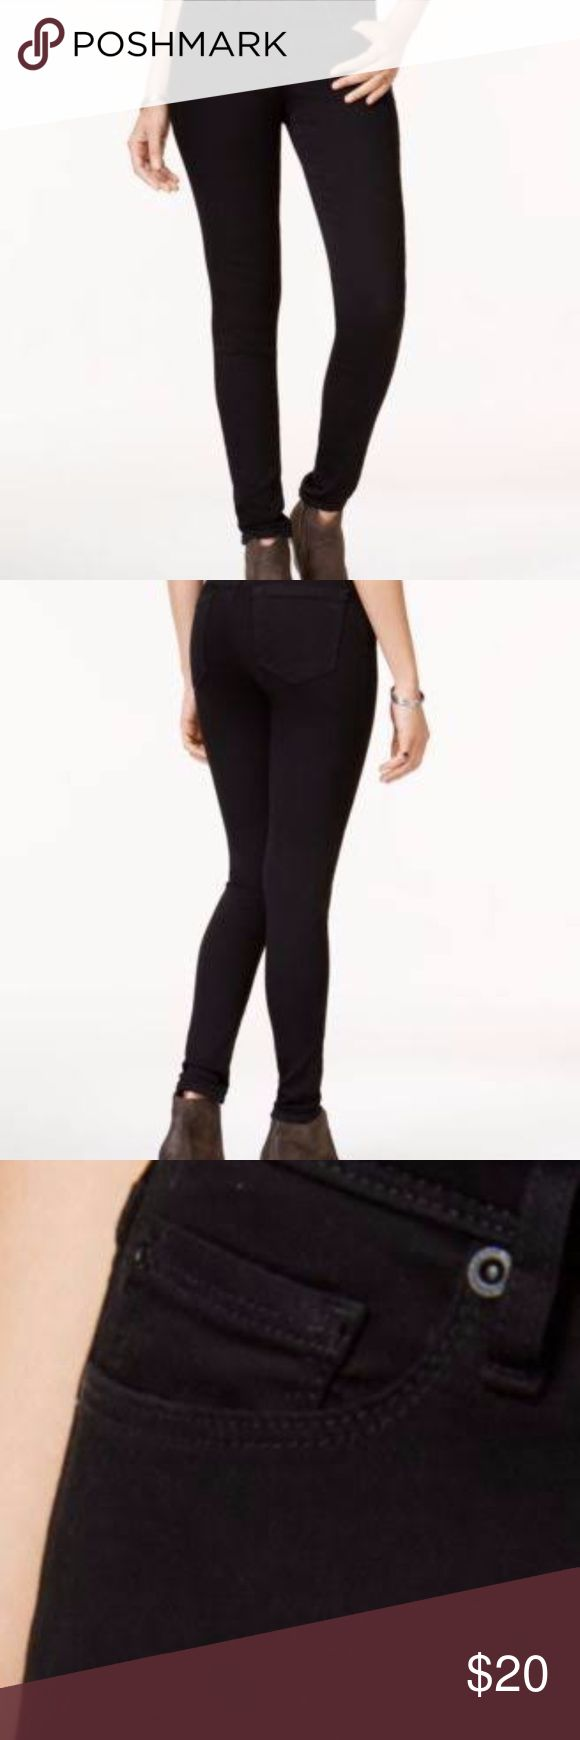 American Rag black wash skinny jeans In perfect condition. Size 5S (short), and stretchable. Love these jeans with booties! American Rag Jeans Skinny